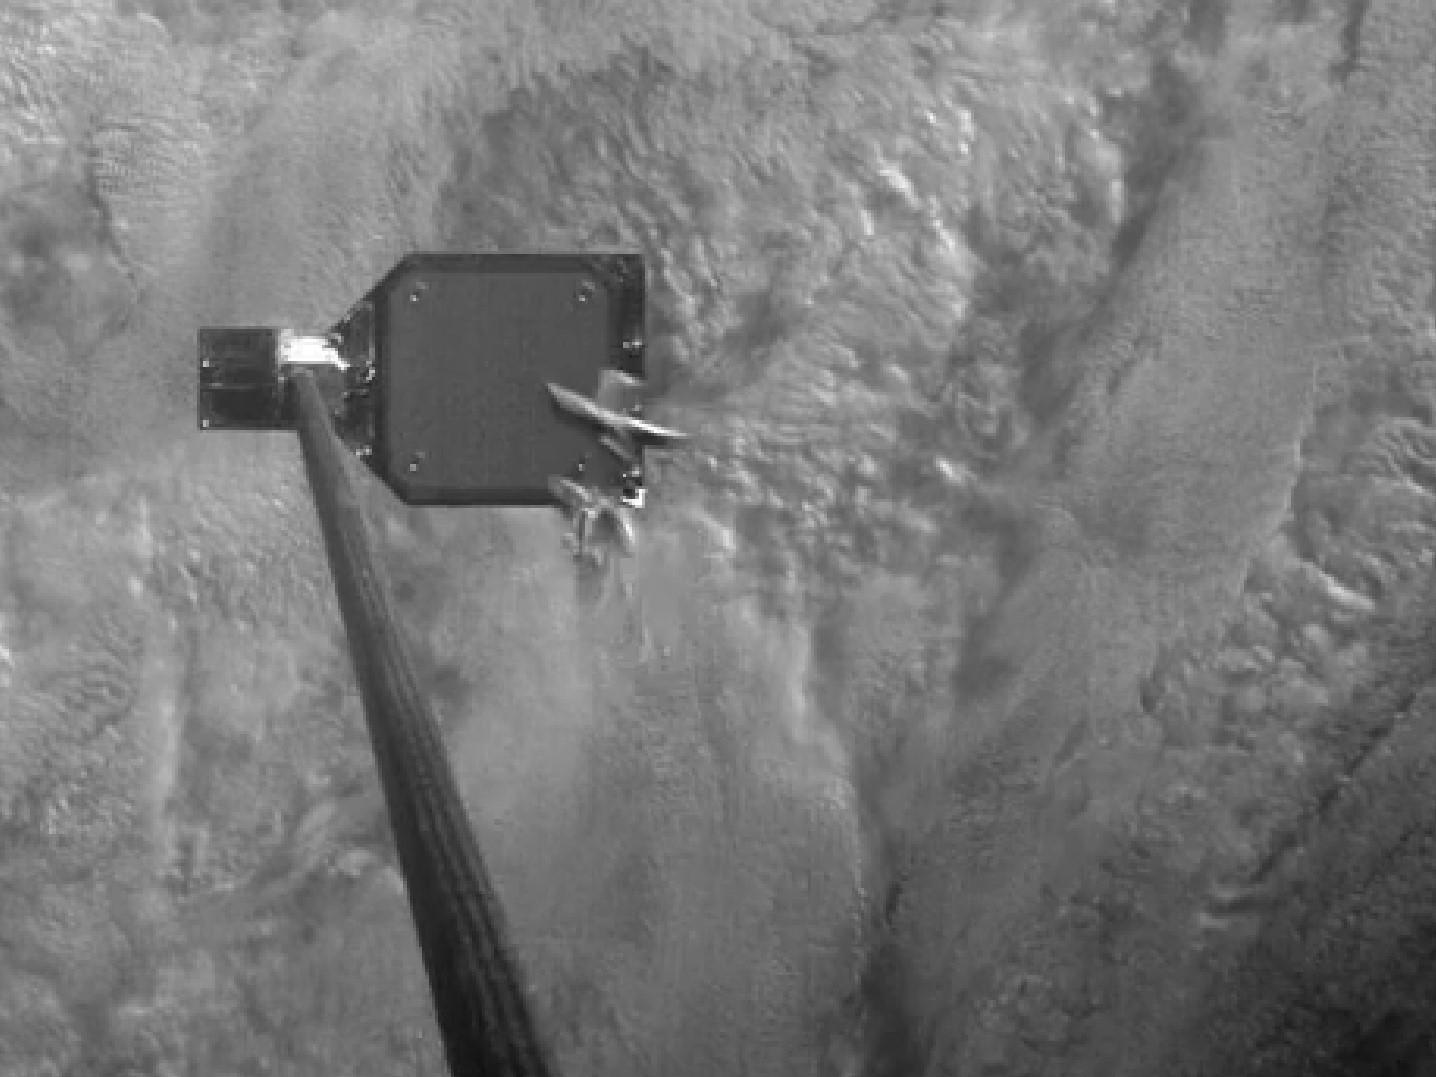 Harpoon Impales and Captures Space Junk Floating in Orbit